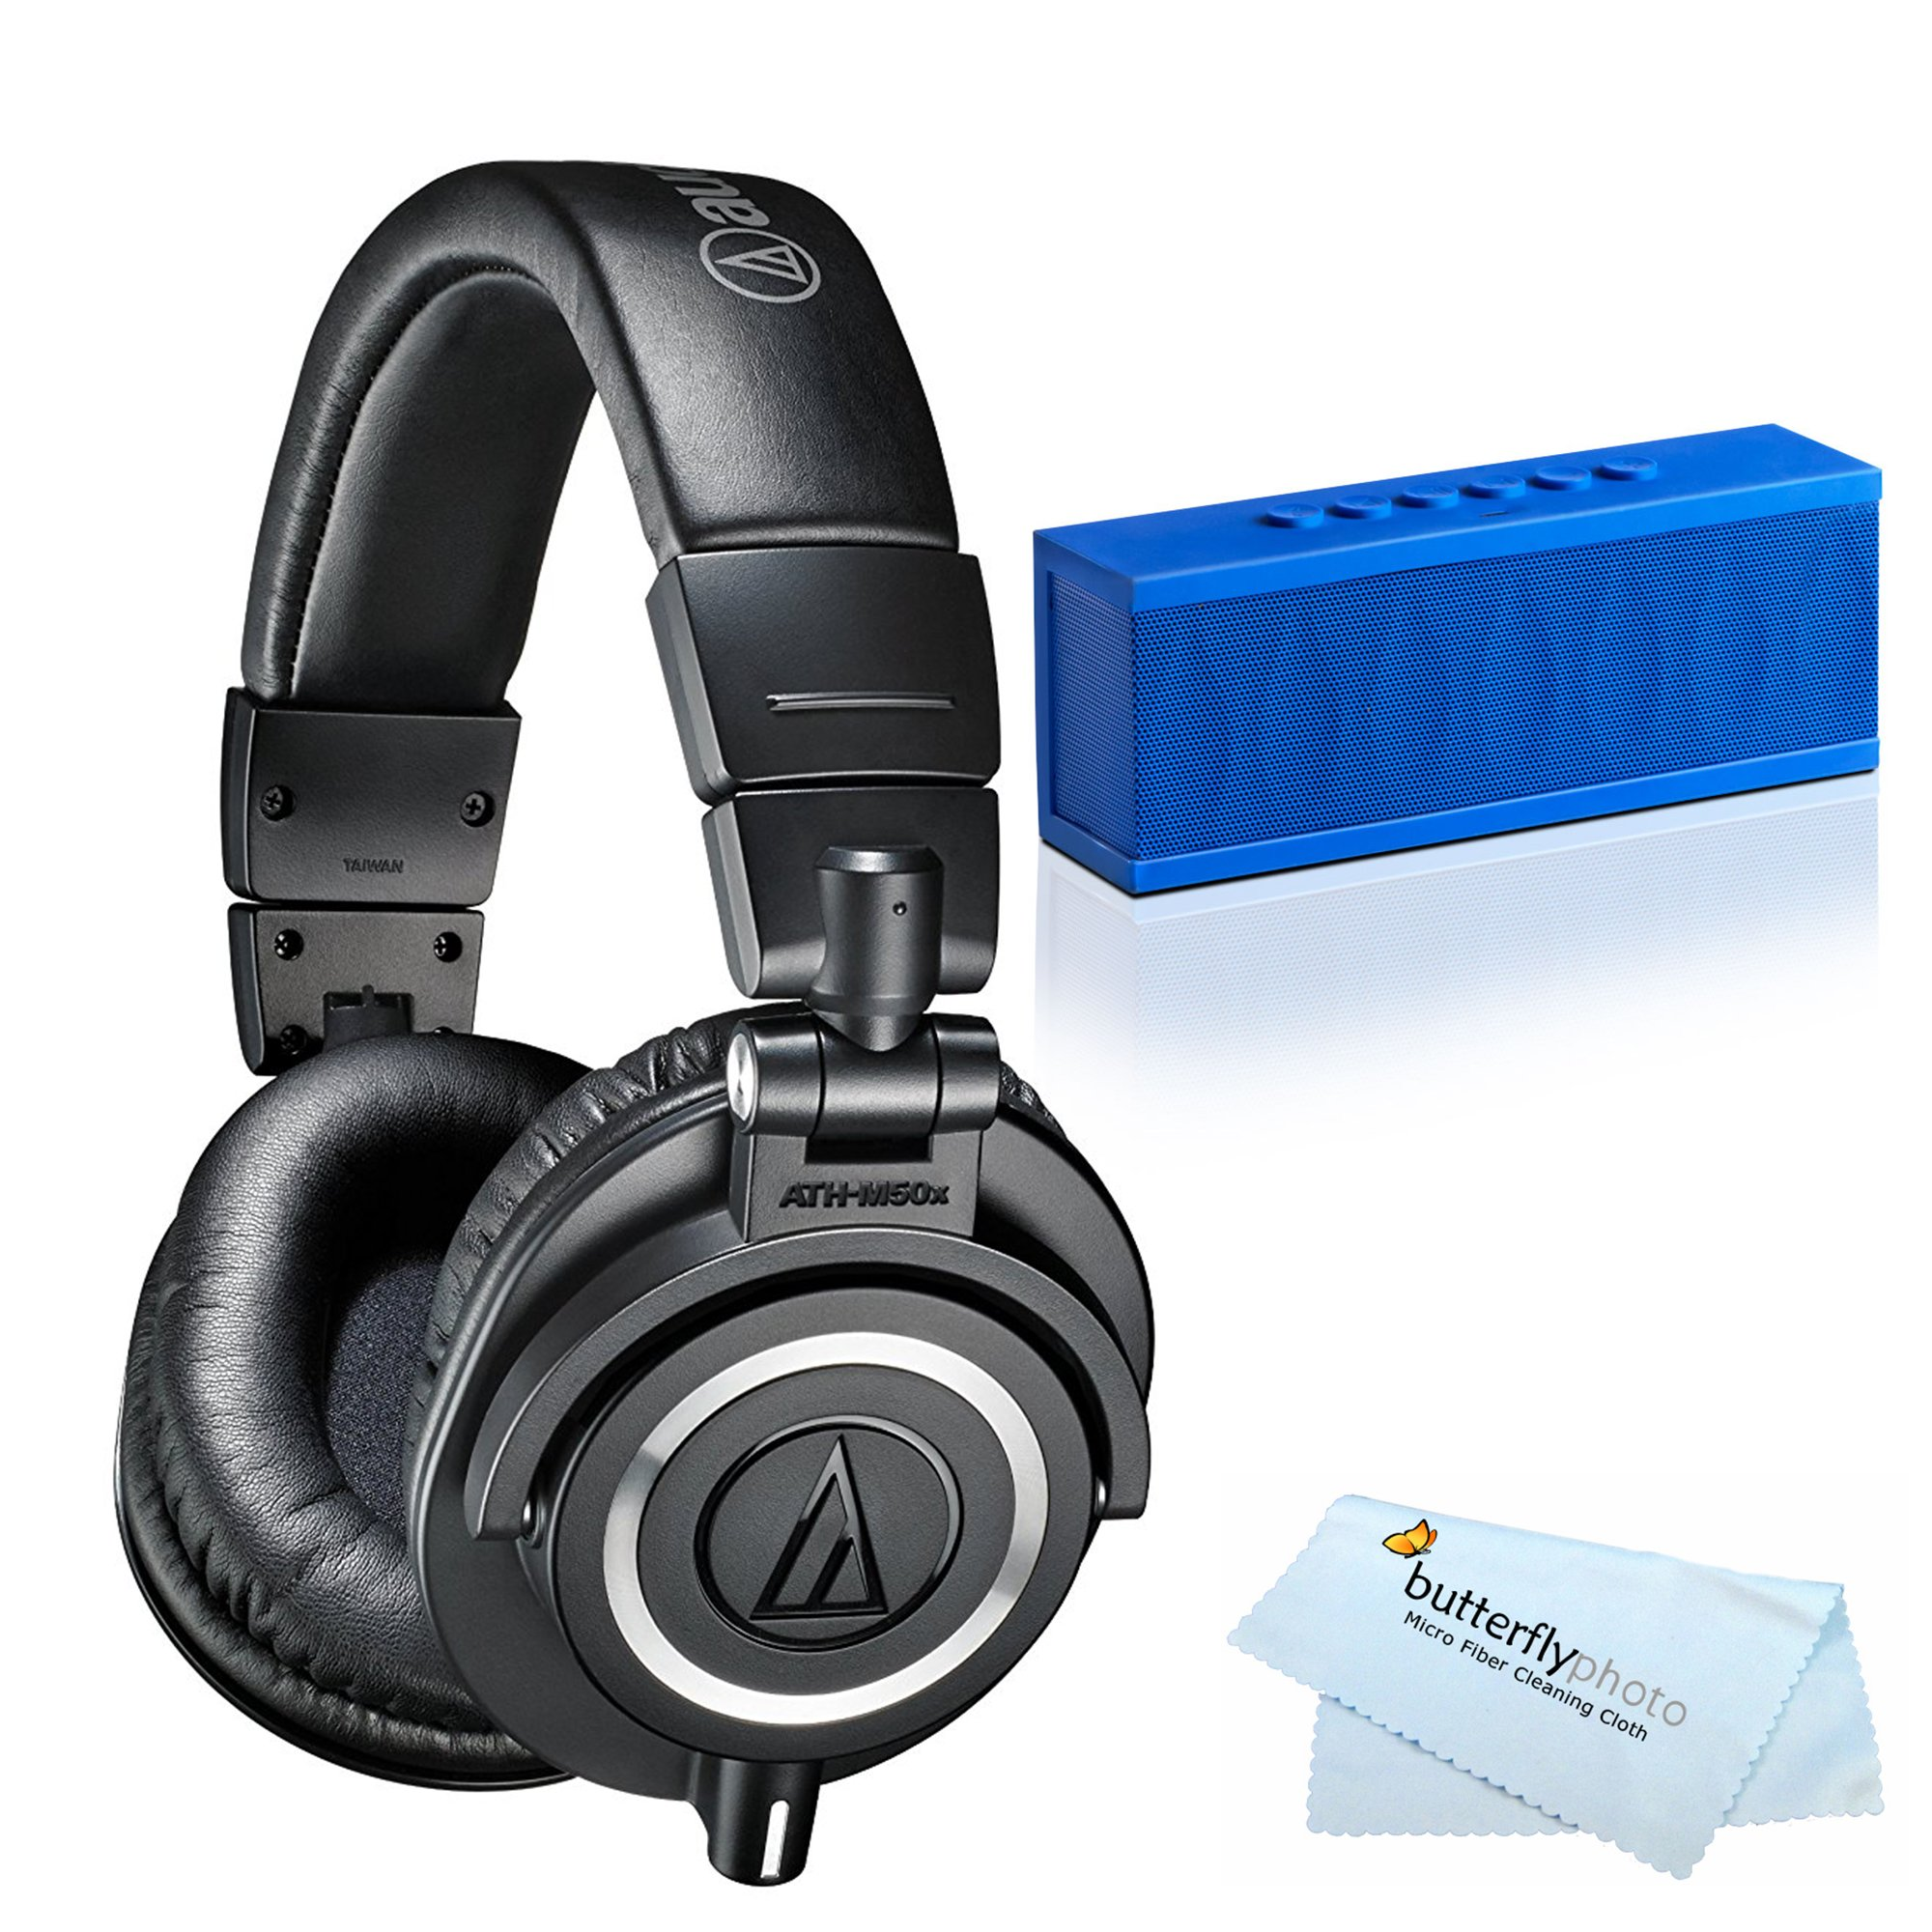 Audio-Technica ATH-M50x Professional Studio Monitor Headphones + BONUS Photive CYREN Portable Wireless Bluetooth Speaker with Built in Speakerphone